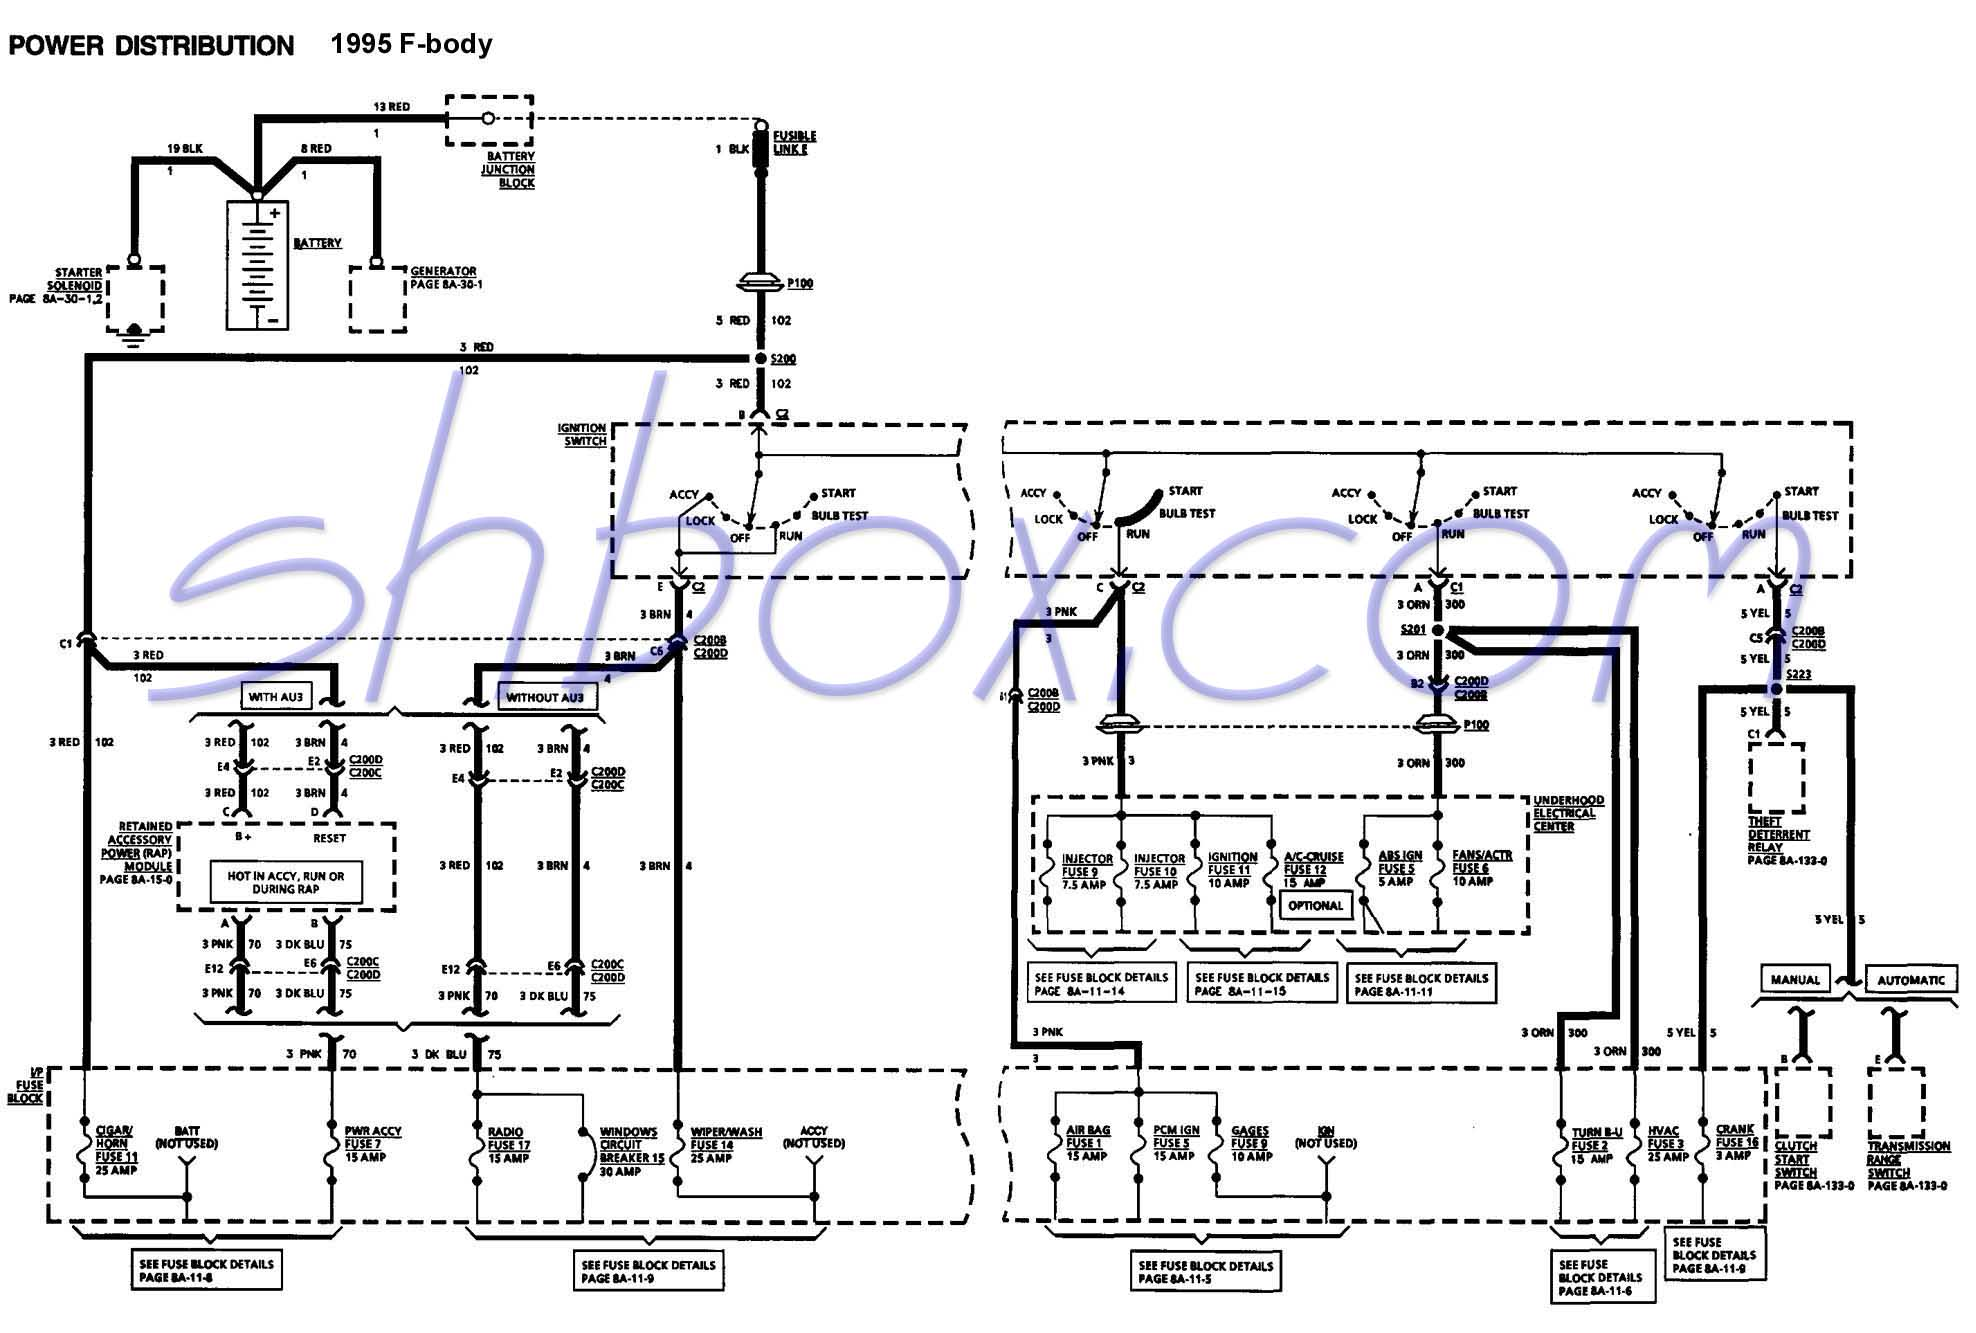 hight resolution of 4th gen lt1 f body tech aids 95 camaro engine wiring diagram 95 camaro wiring diagram